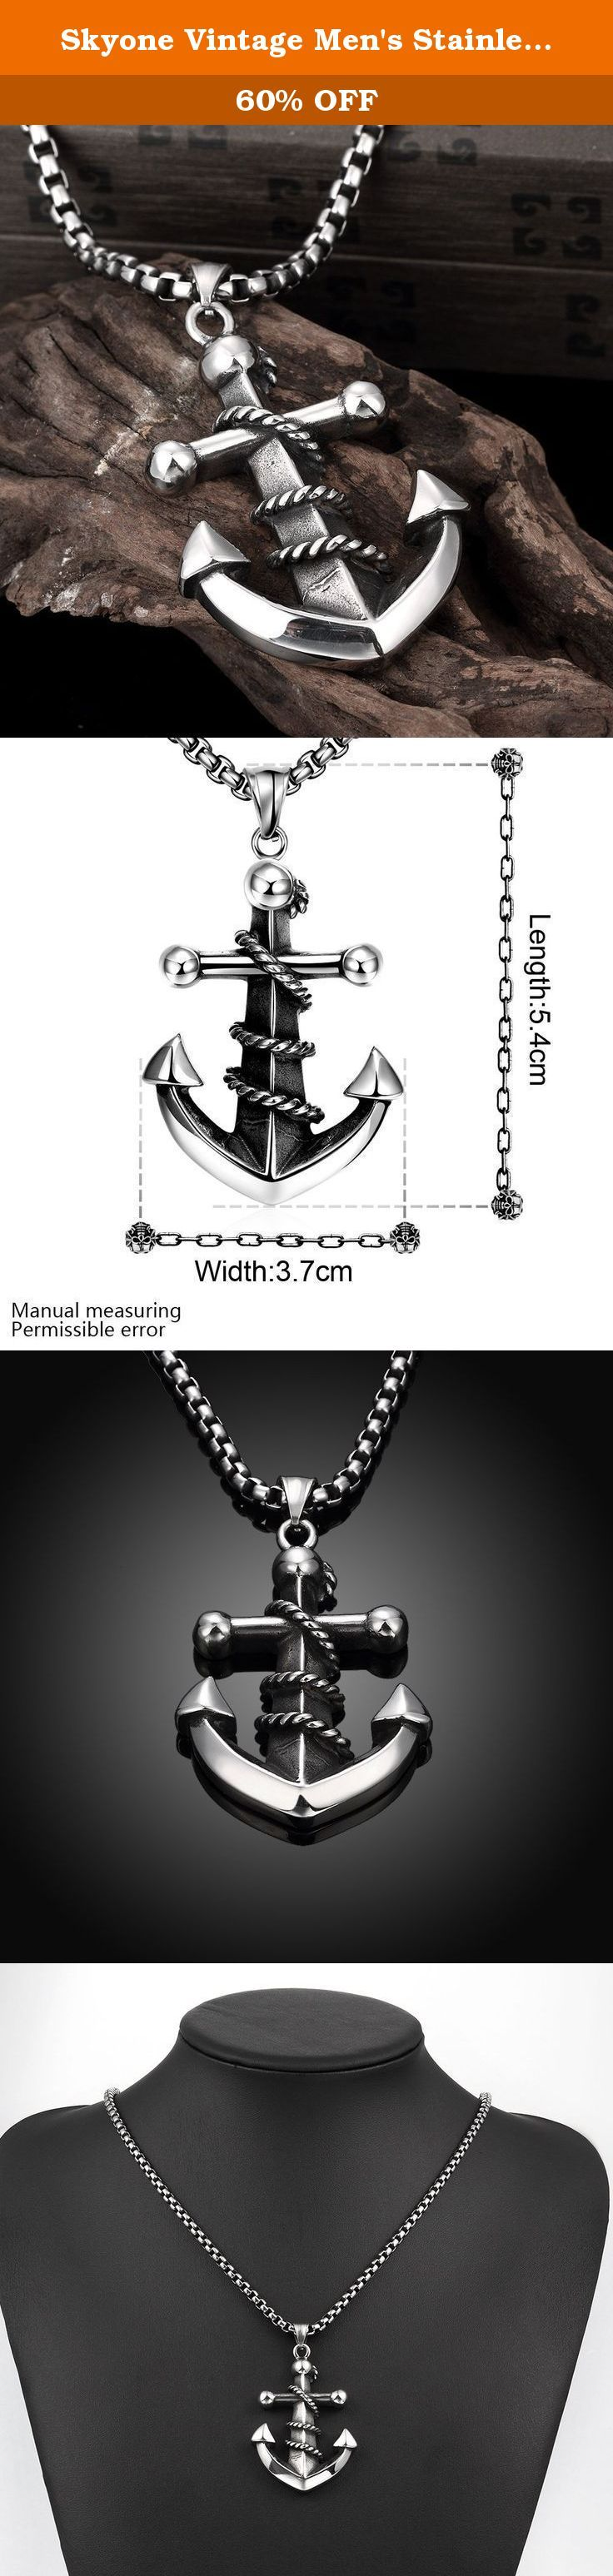 "Skyone Vintage Men's Stainless Steel Large Rope Anchor Nautical Pendant Necklace Charm Biker 24"" Chain. Skyone Vintage Men's Stainless Steel Large Rope Anchor Nautical Pendant Necklace Charm Biker 24"" Chain This beautiful jewelry necklace will add charm to you Basic Characteristics Style:Retro Punk Condition:100% brand new Metal: Stainless Steel Finishing:Polished and Blackened Chain: Curb Chain Clasp:Lobster Claw Pendant Dimension: 5.4cm(2.1inch)x3.7cm(1.5inch) Chain length:60cm(24inch)..."